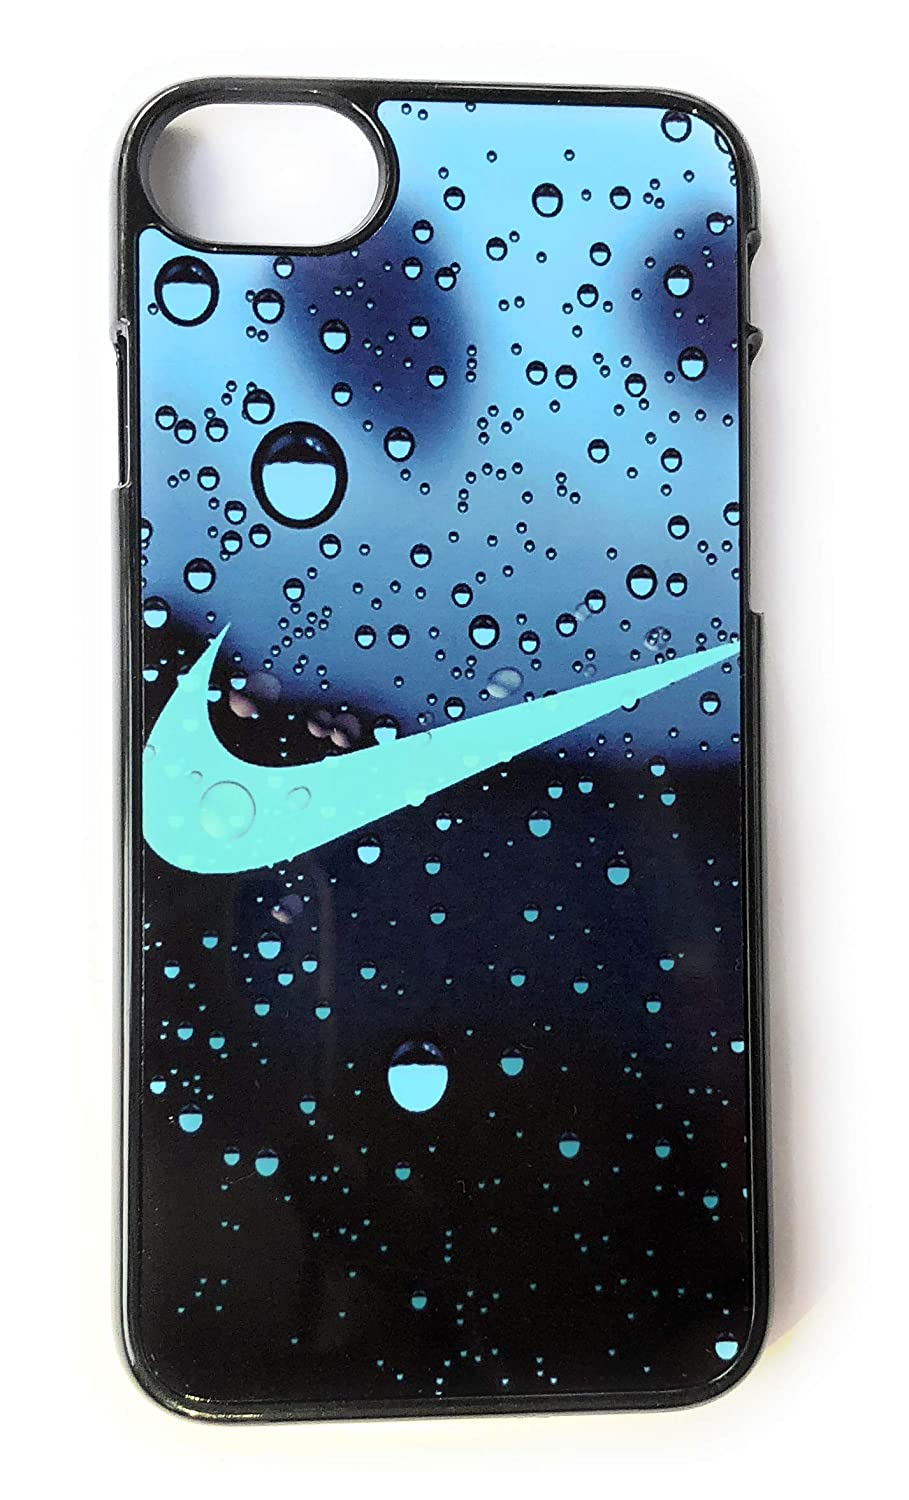 promo code 71ca7 e0144 Water Droplets Background Nike Phone Case Cover for Iphone 6/6s 4.7 (Inch)  Just Do It Luxury Design